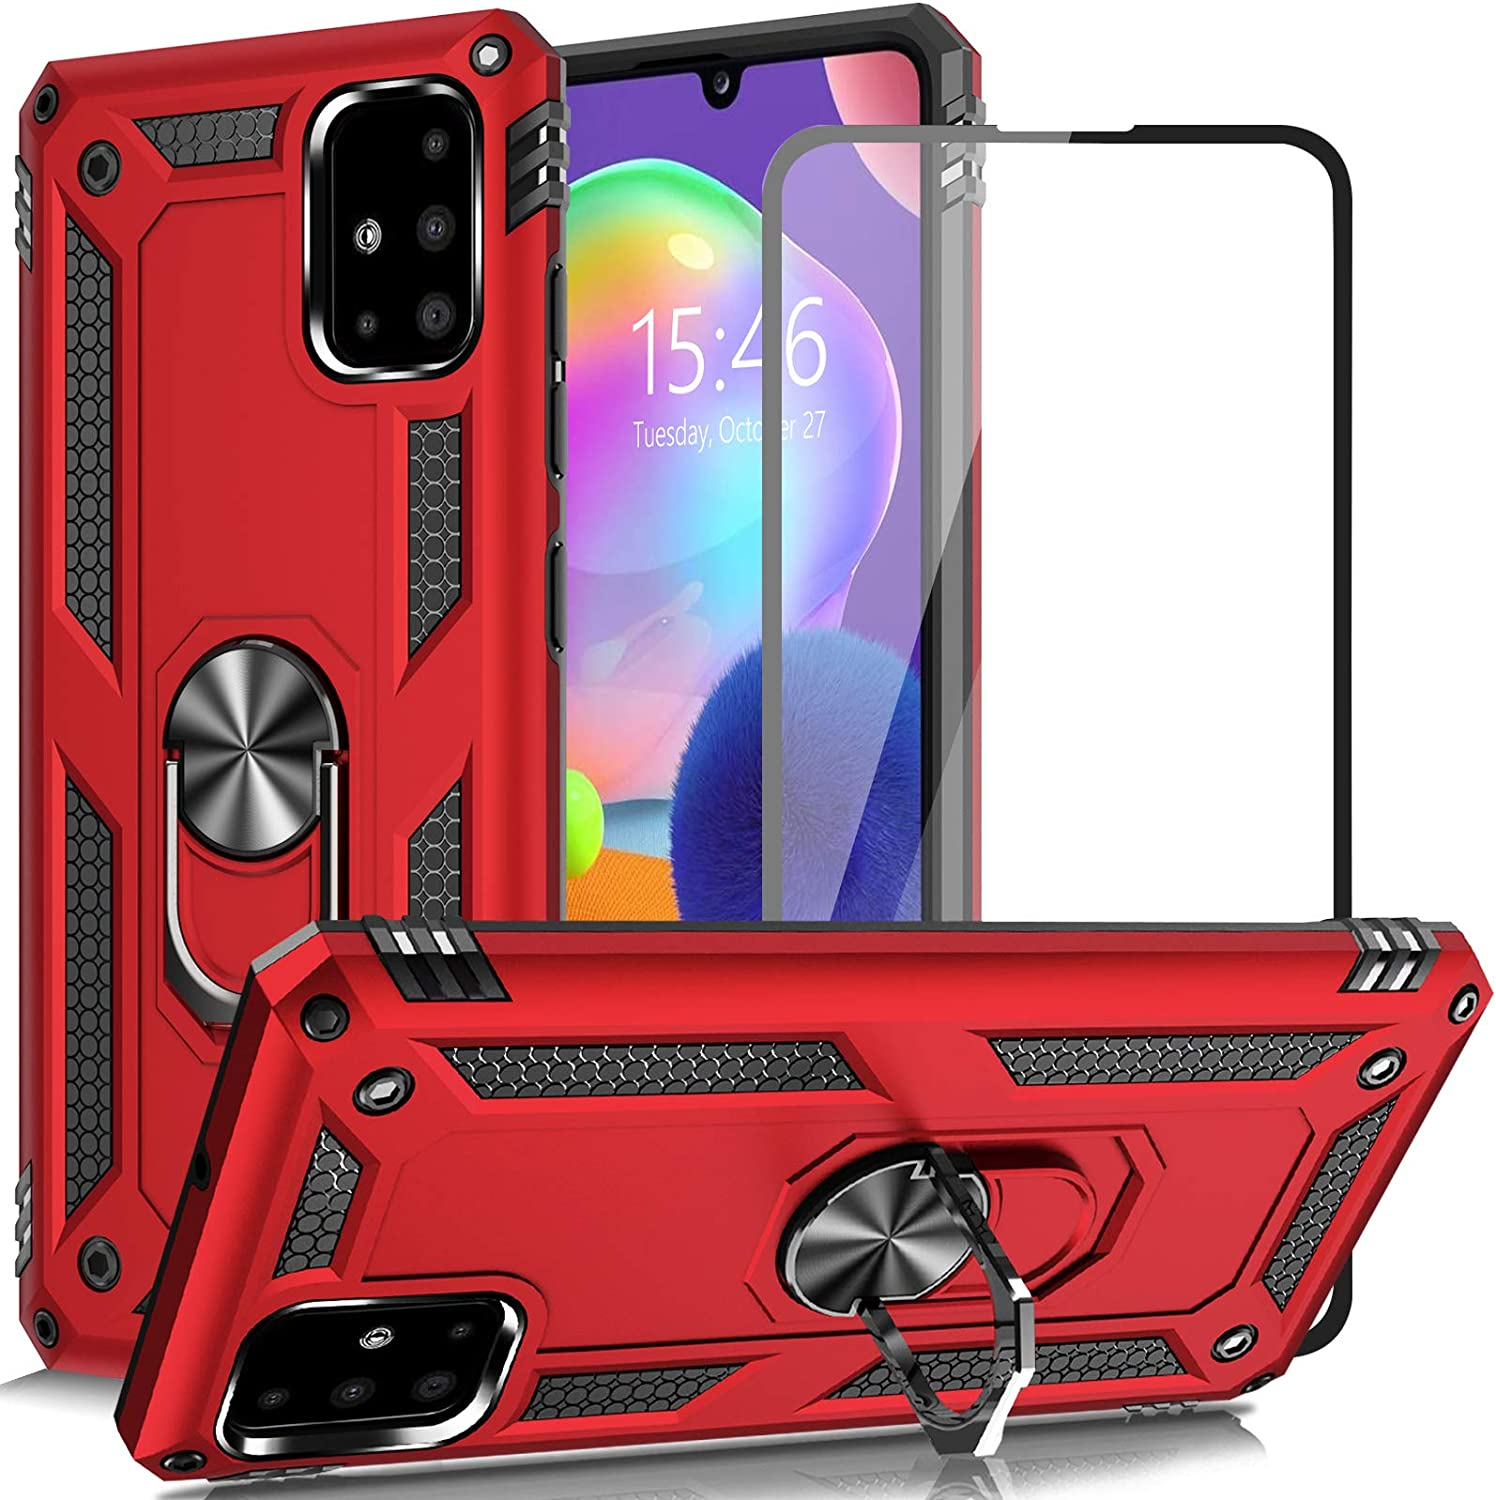 AUPAI for Galaxy A31 4G Case with Glass Screen Protector, Heavy Duty 15ft Drop Tested Shockproof Cover with Magnetic Ring Kickstand,Protective Phone Case for Samsung Galaxy A31 4G Red